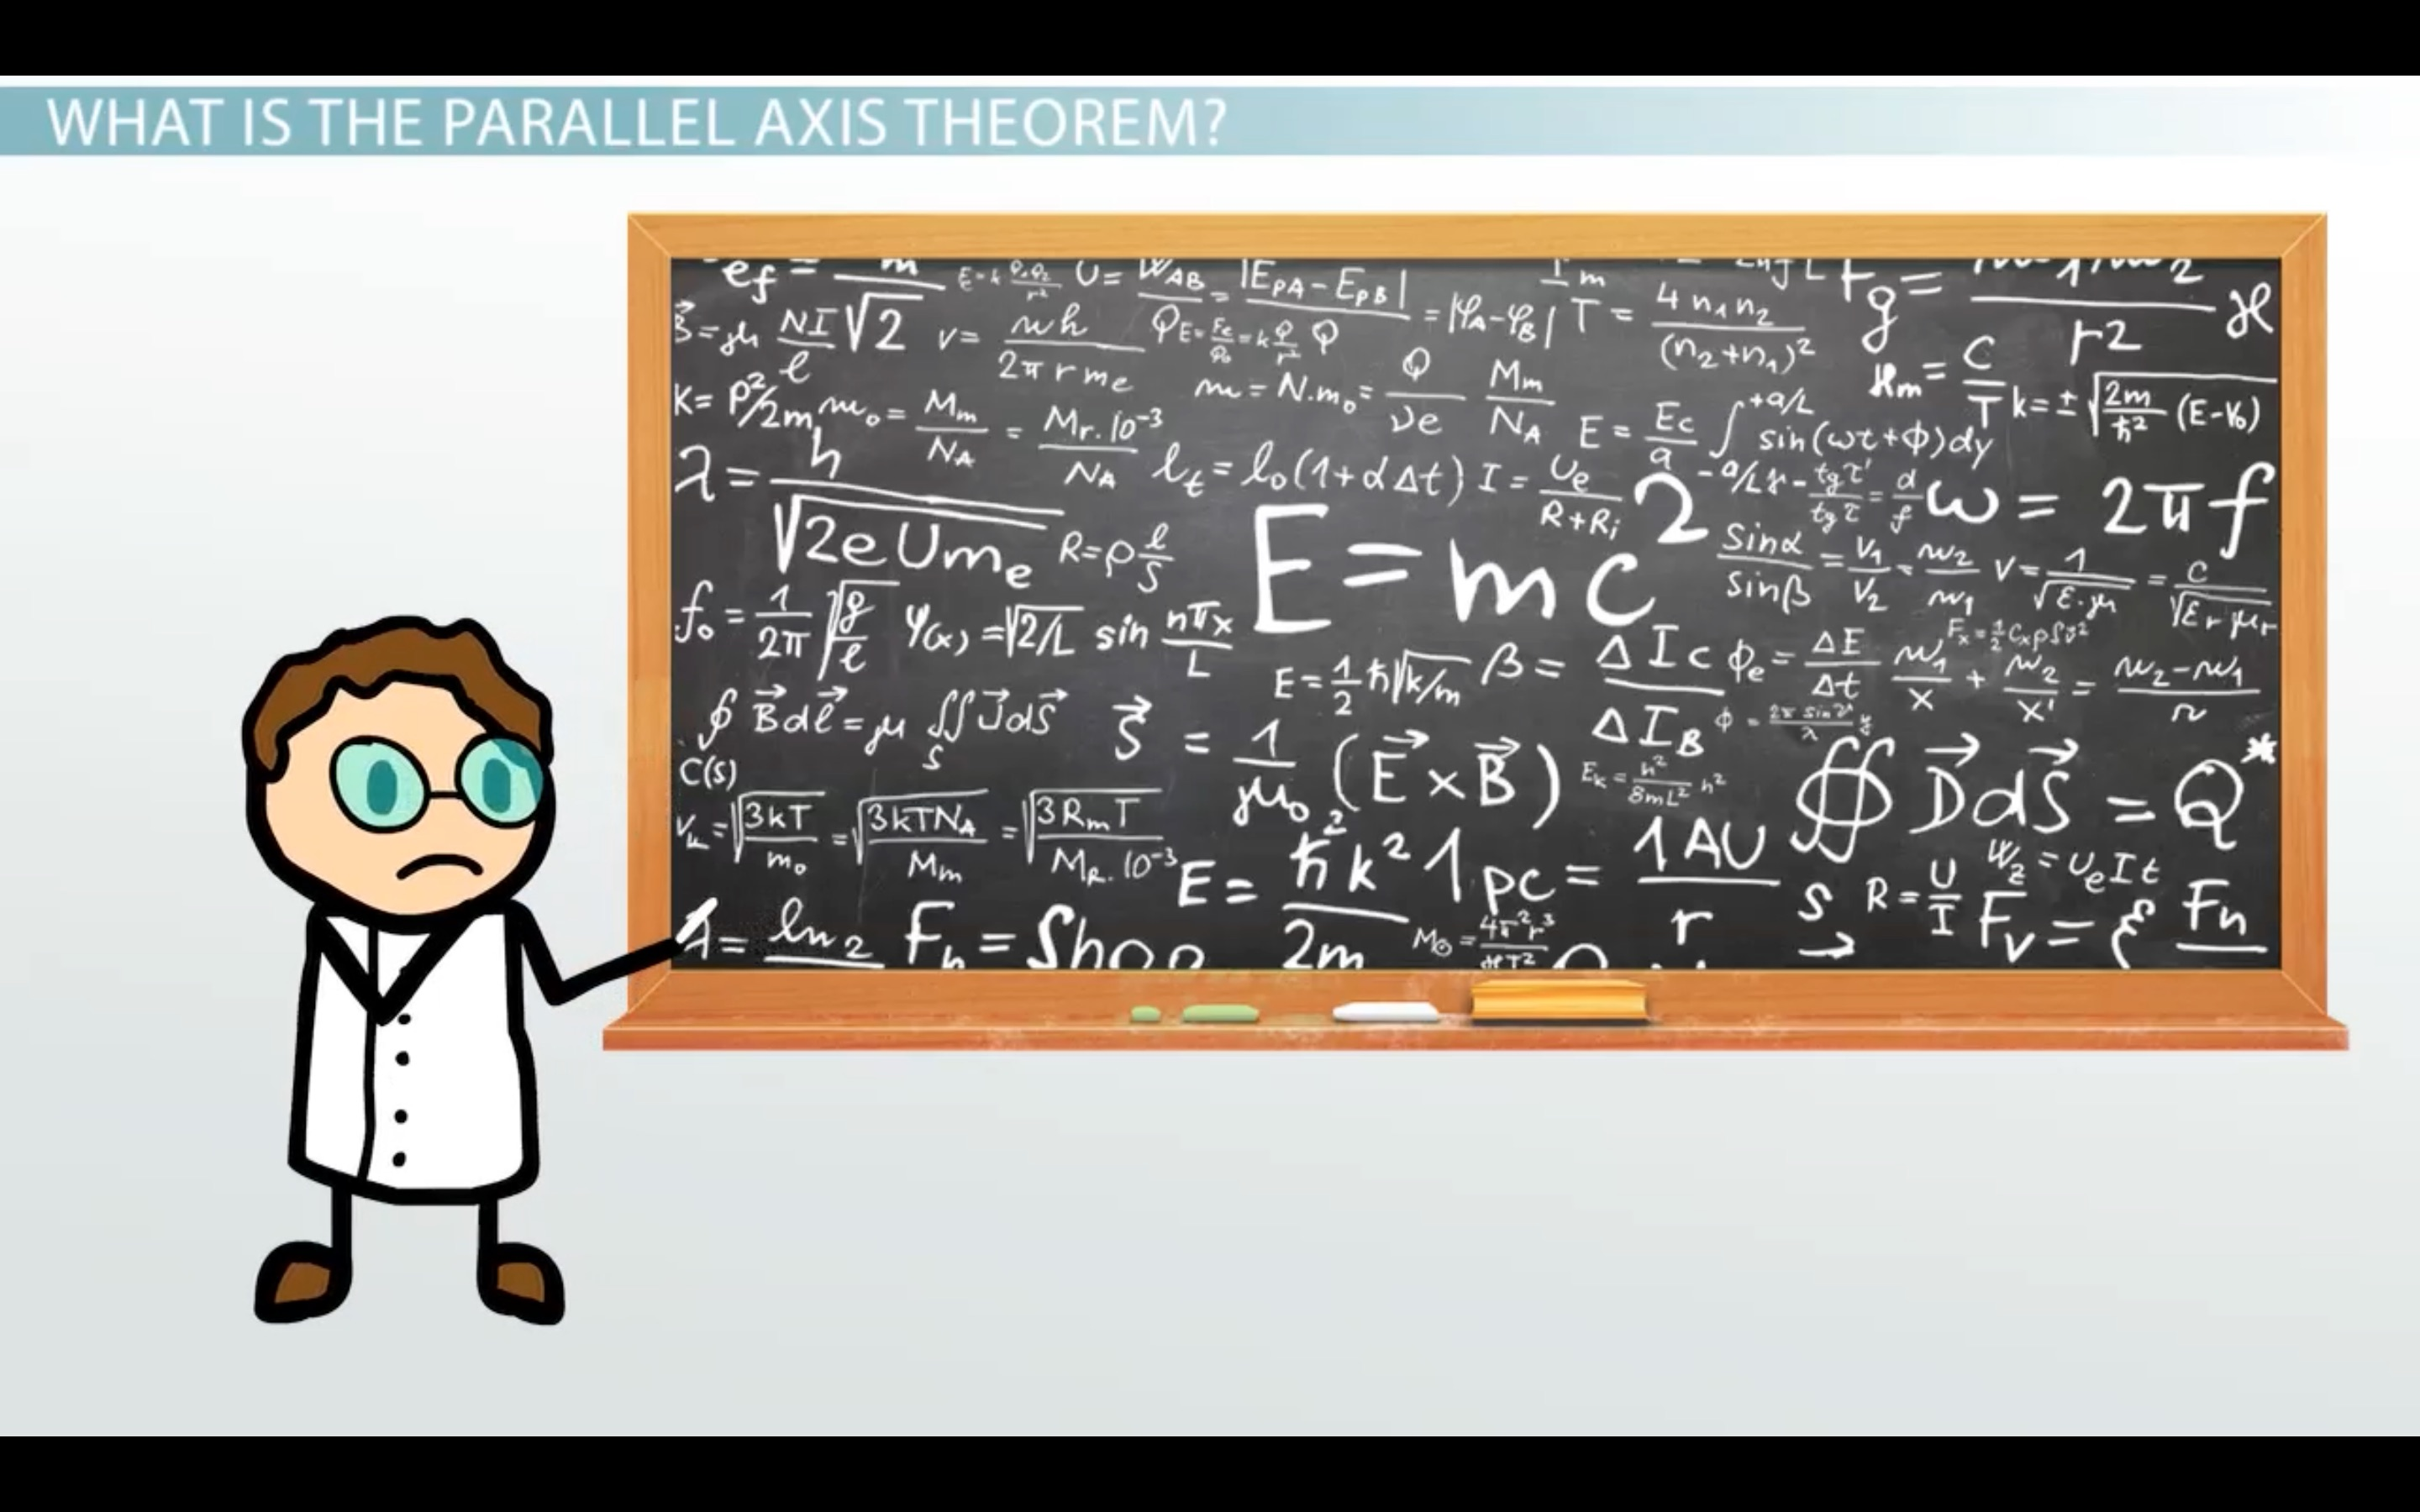 moment of inertia parallel axis theorem example